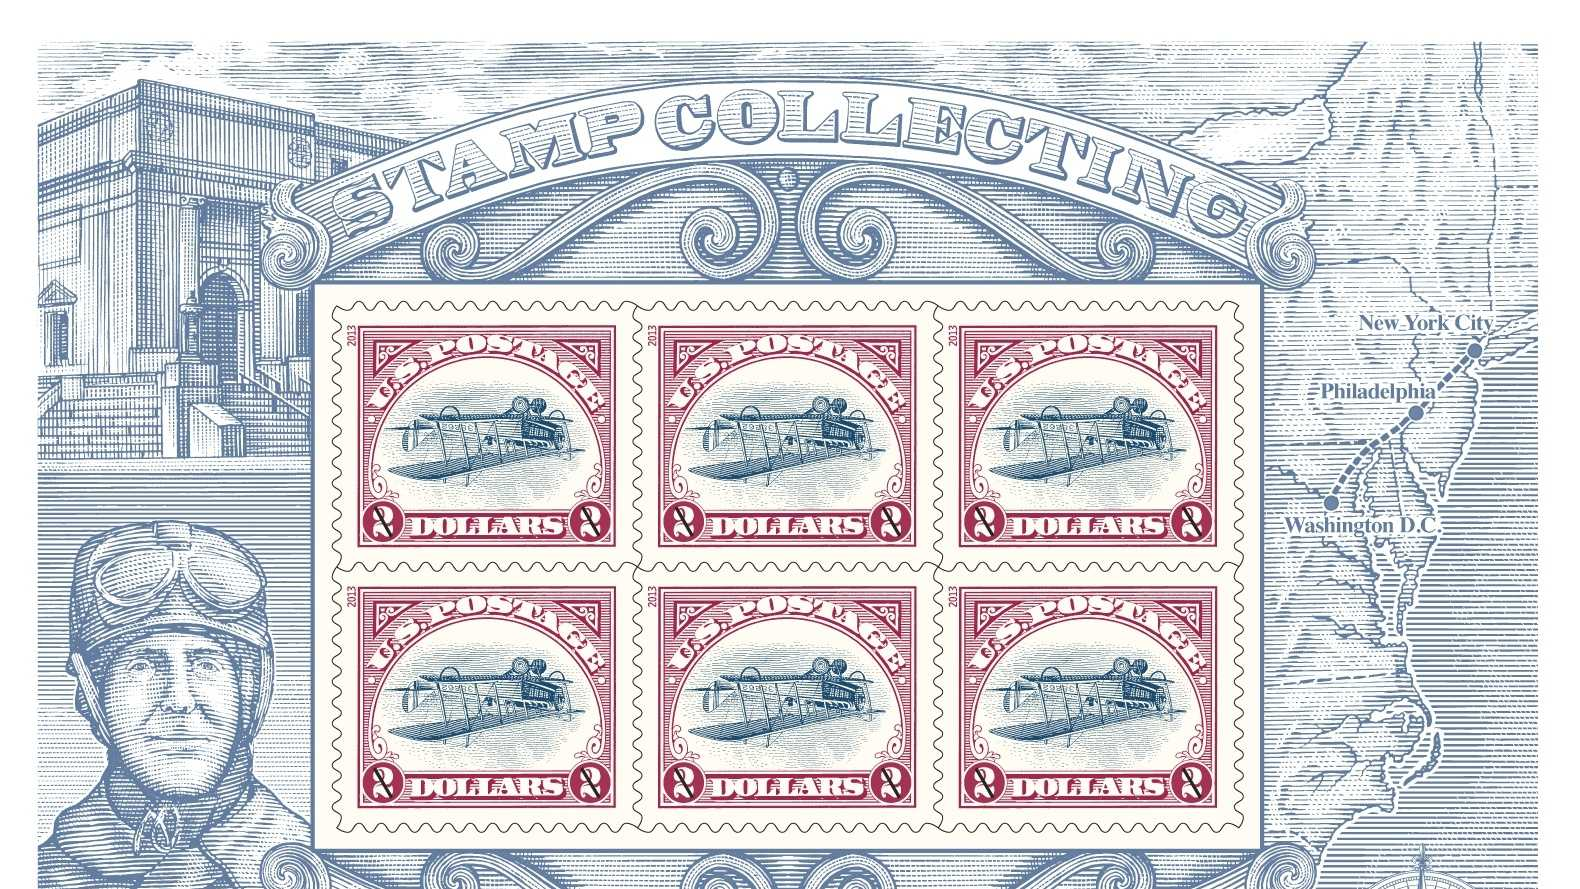 Newly printed sheet of six $2 Inverted Jenny stamps